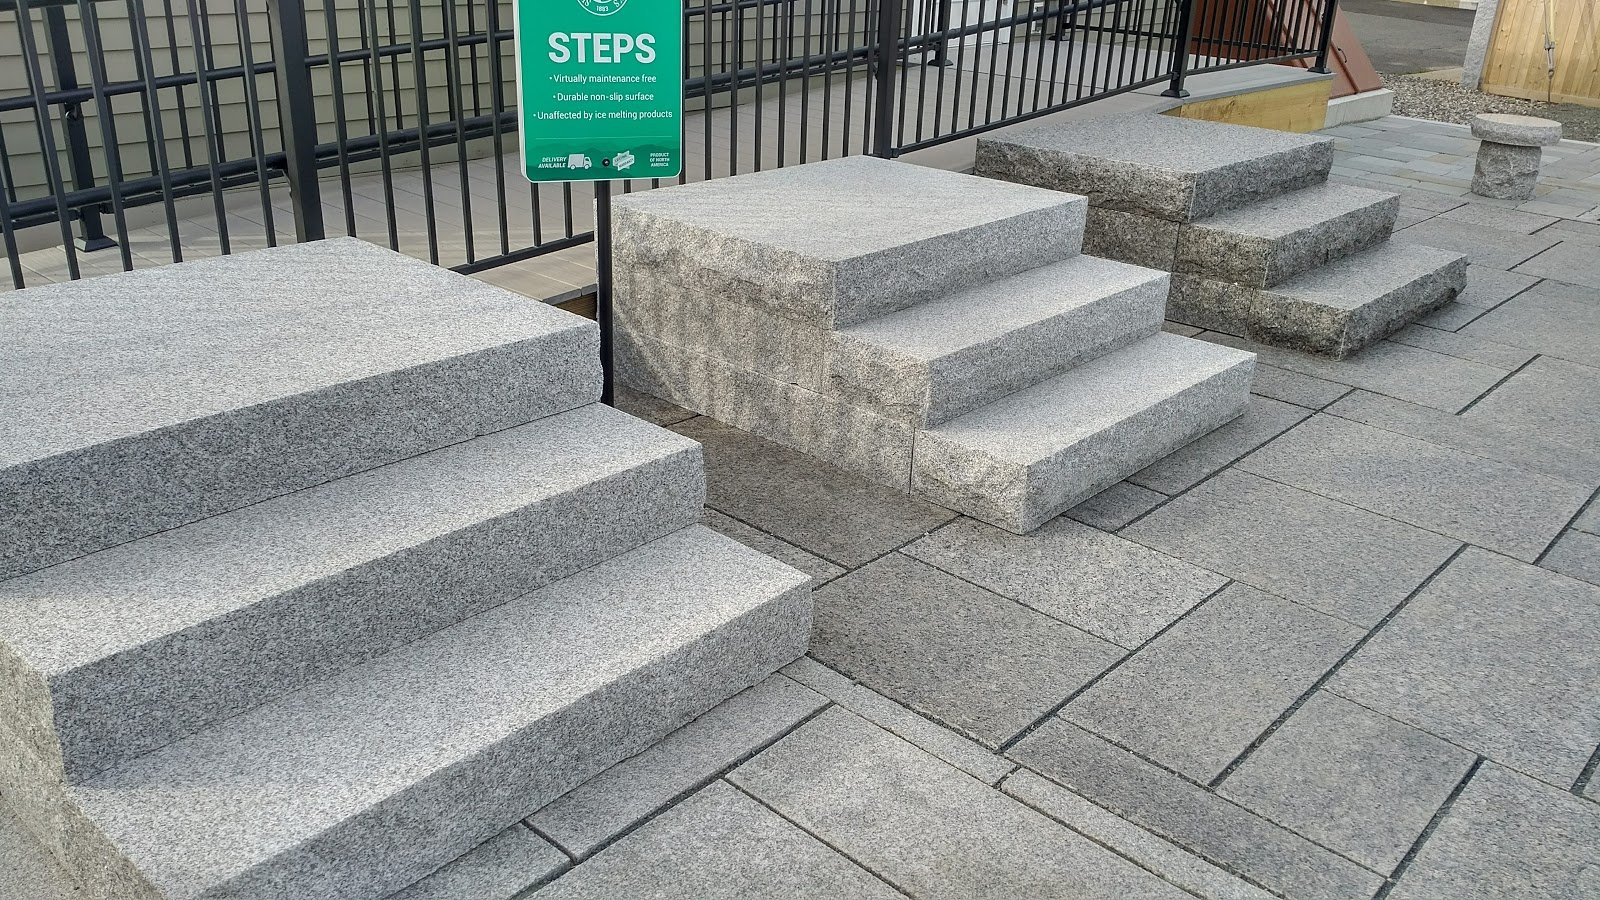 Woodbury Gray granite steps and pavers at the South Hadley store's outdoor display